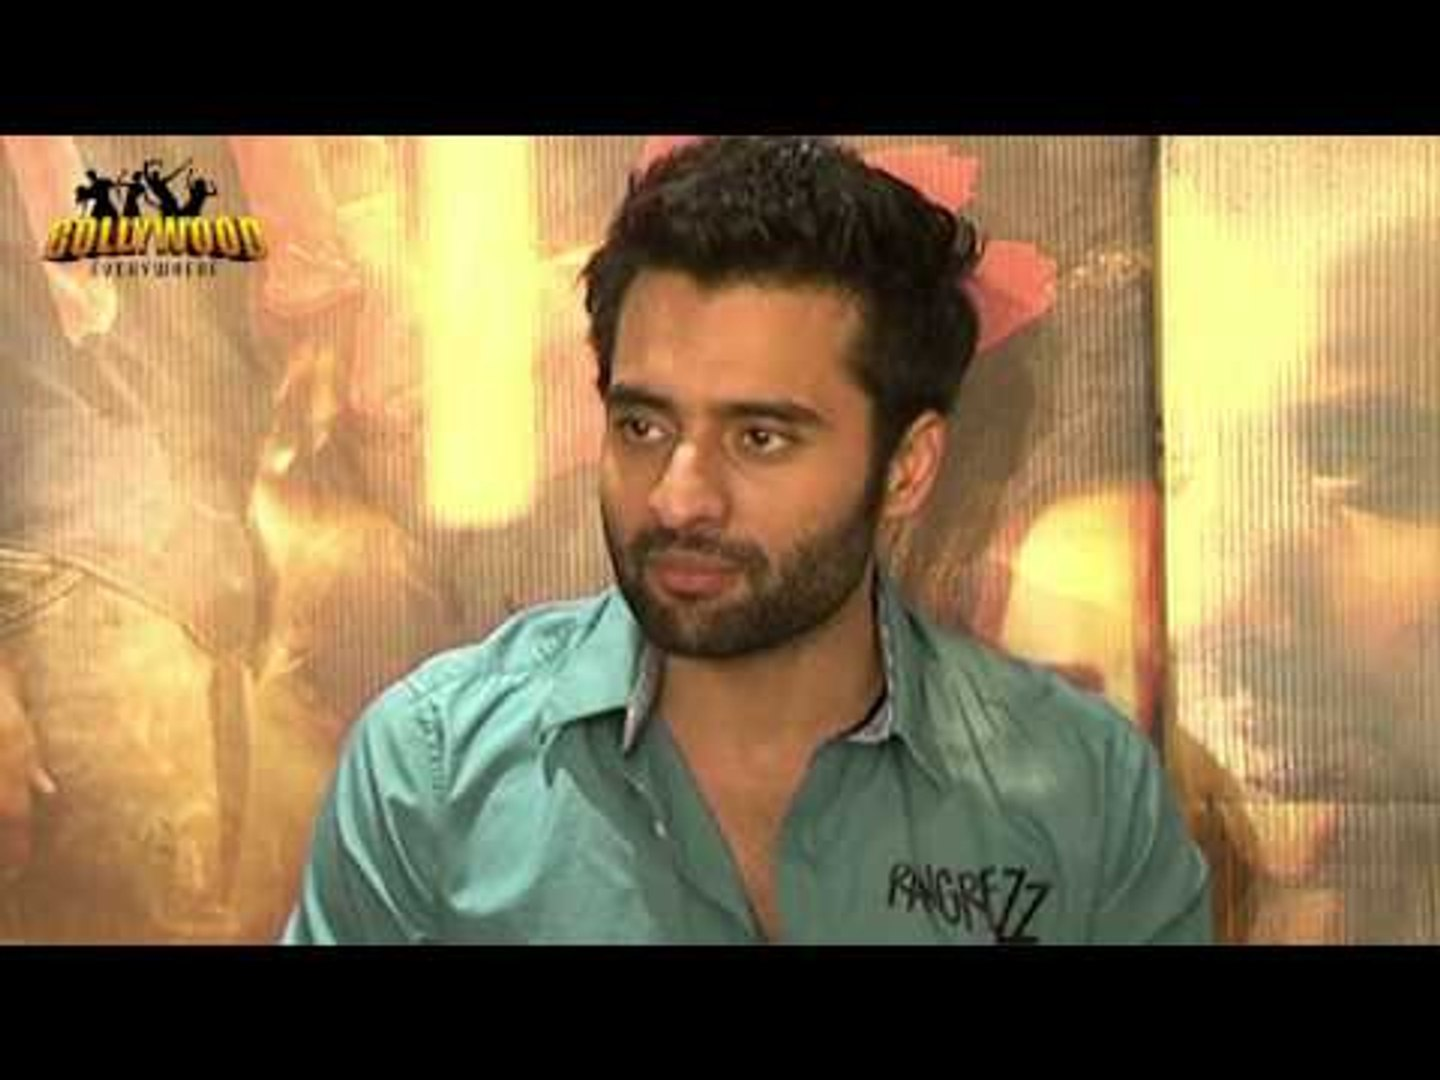 Bollywood Actor Jacky Bhagnani - Interview for Latest Bollywood Movie 'Rangrez'